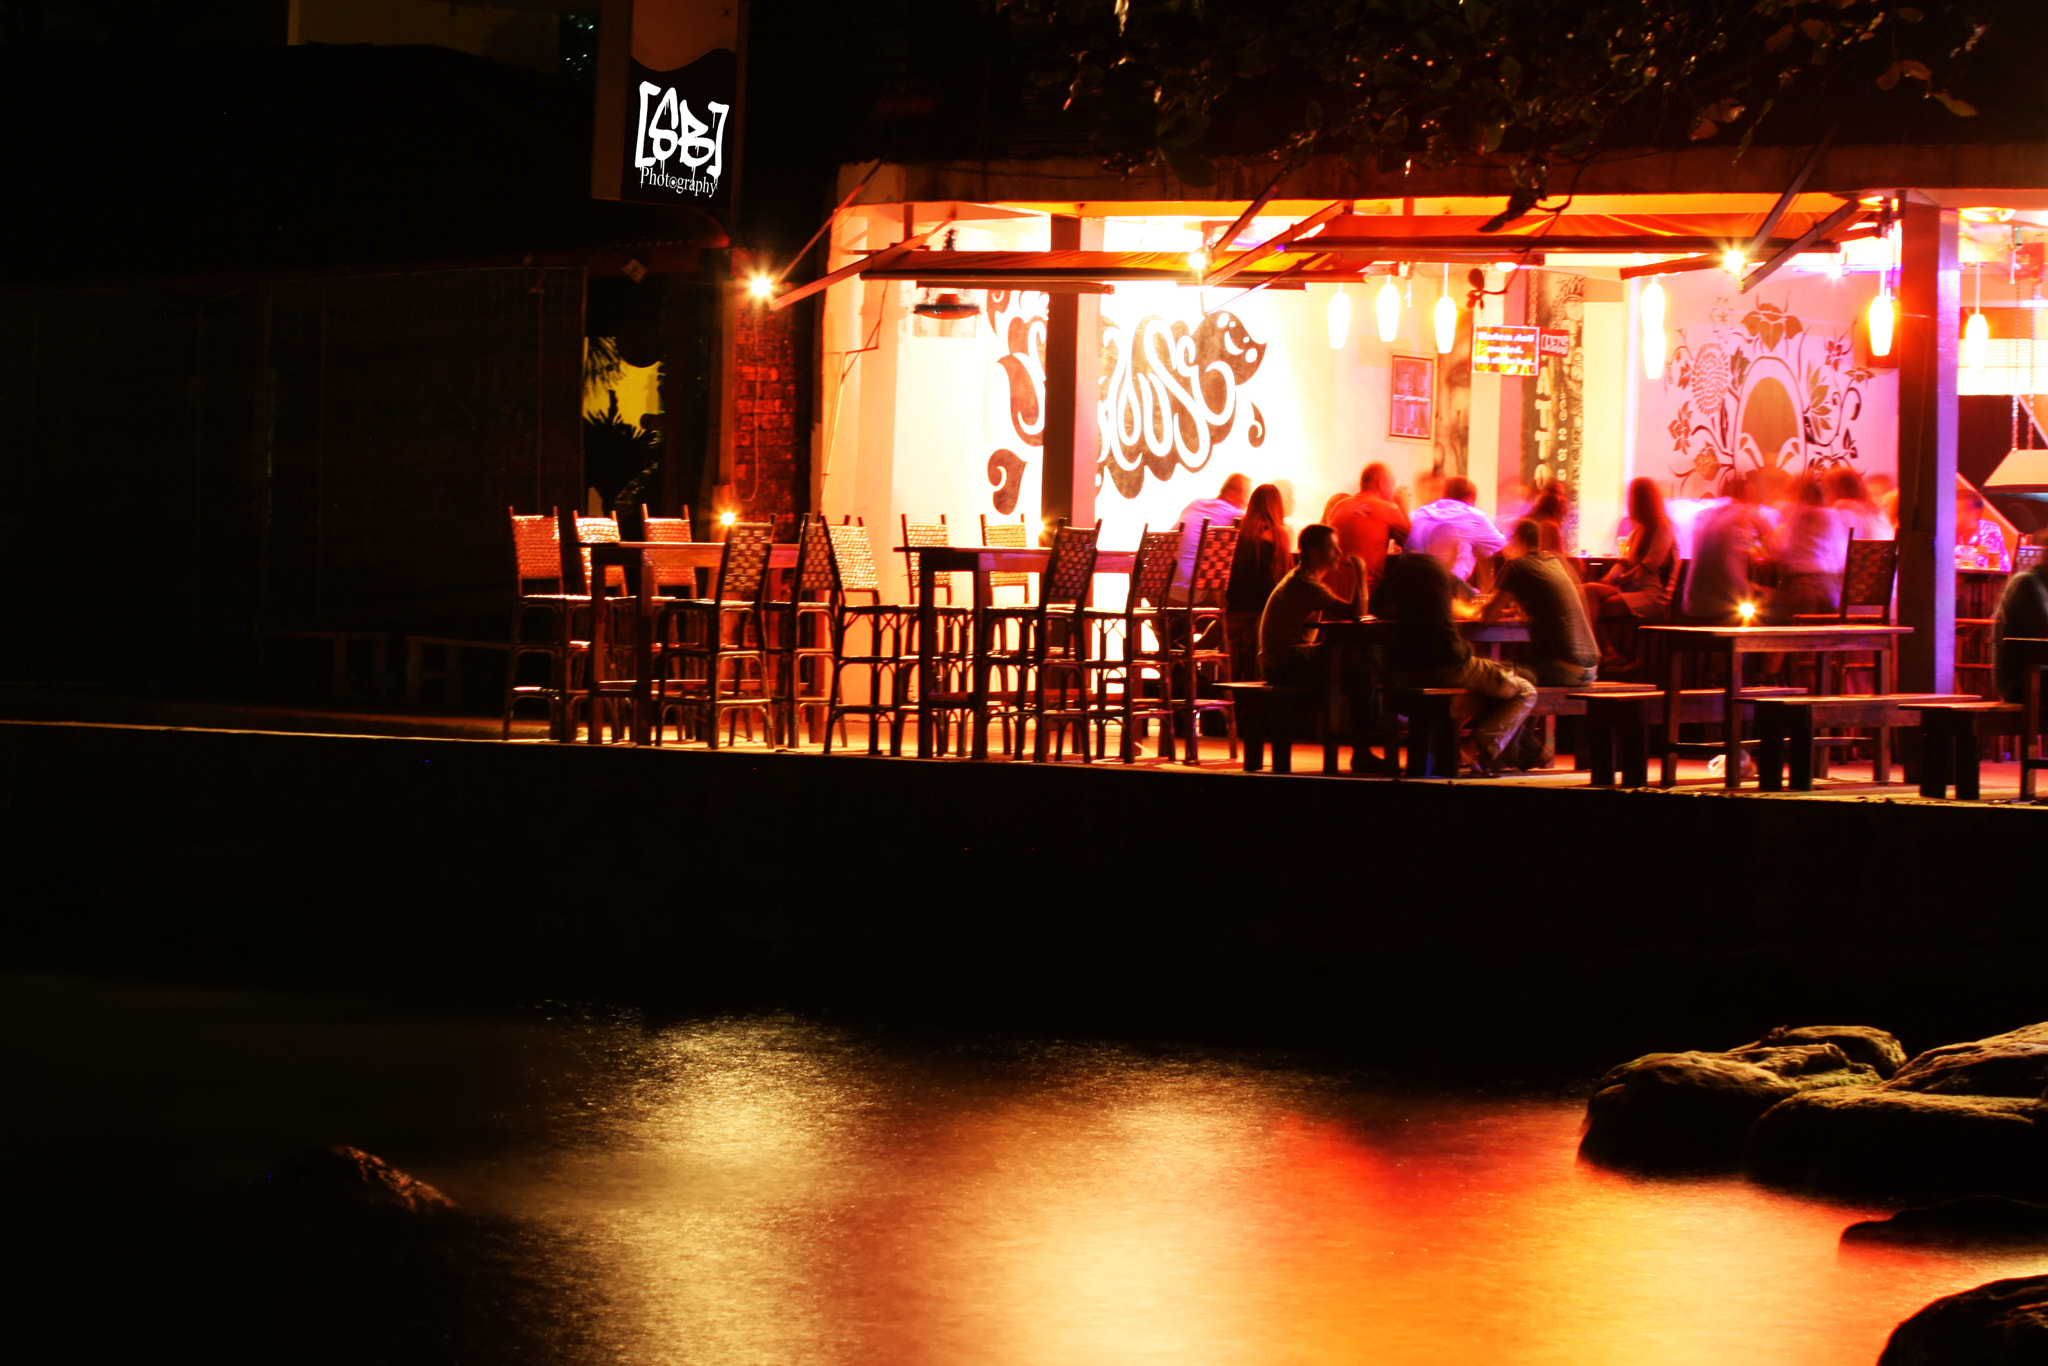 Photograph The Busy Bar by Seng Bee on 500px